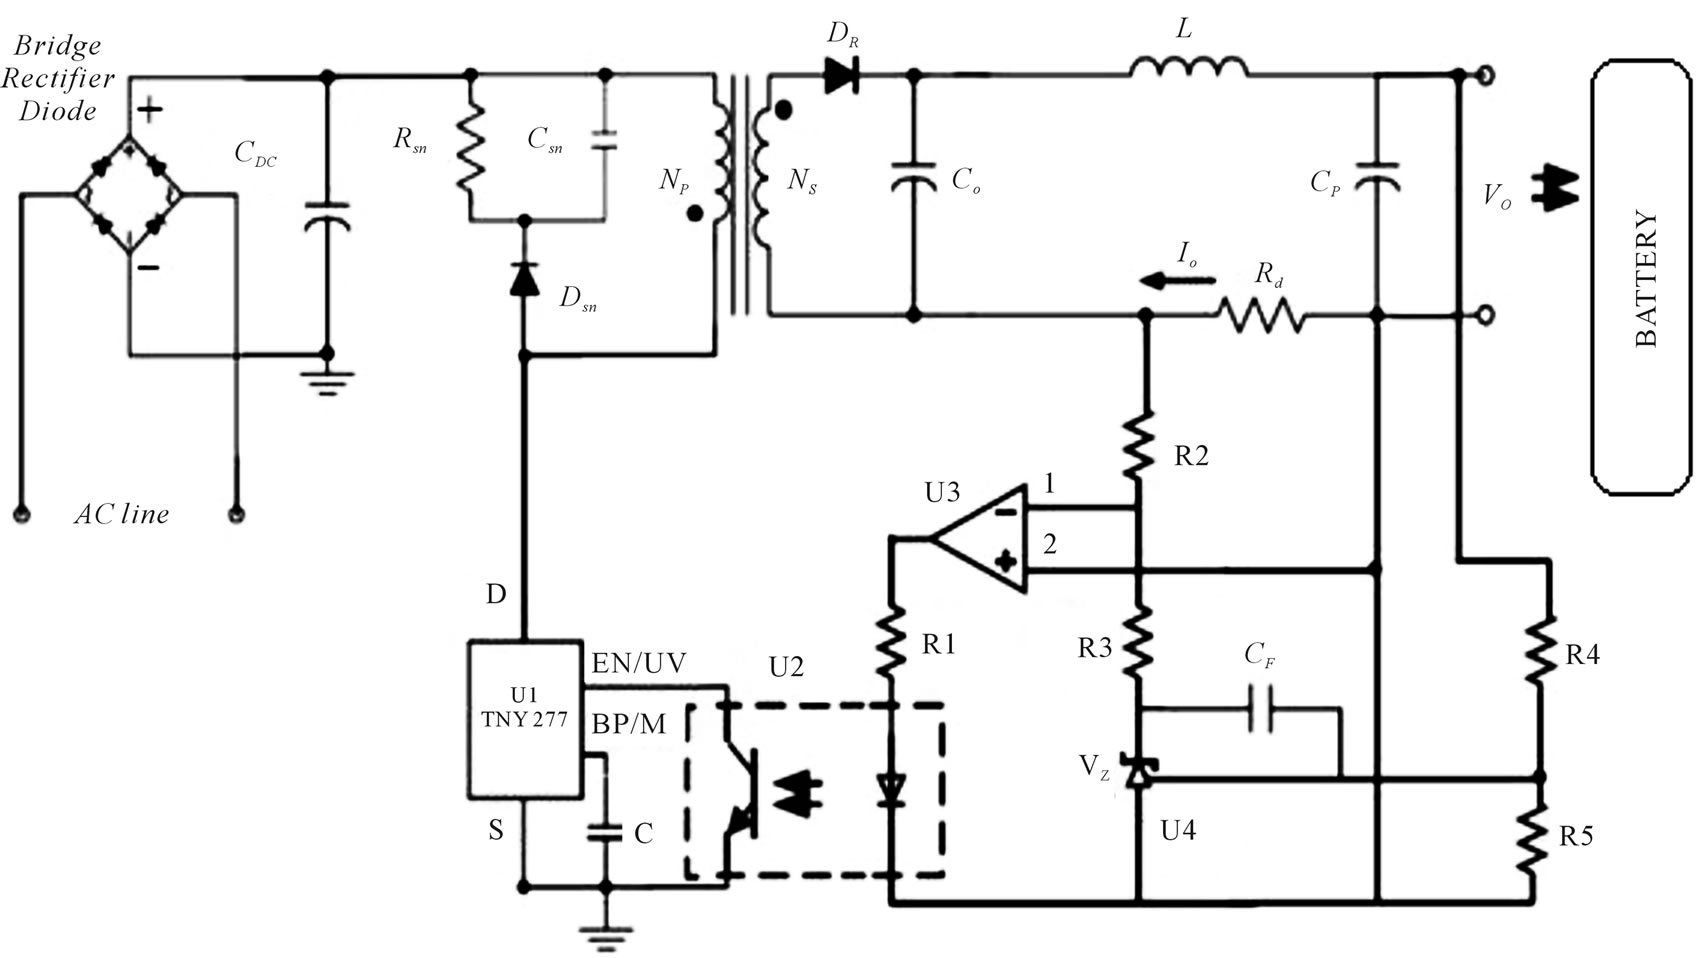 Power Efficient Battery Charger By Using Constant Current Fly Back Transformer Driver Wiring Diagram Schematic Rise The Final Scheme Of Proposed Converter